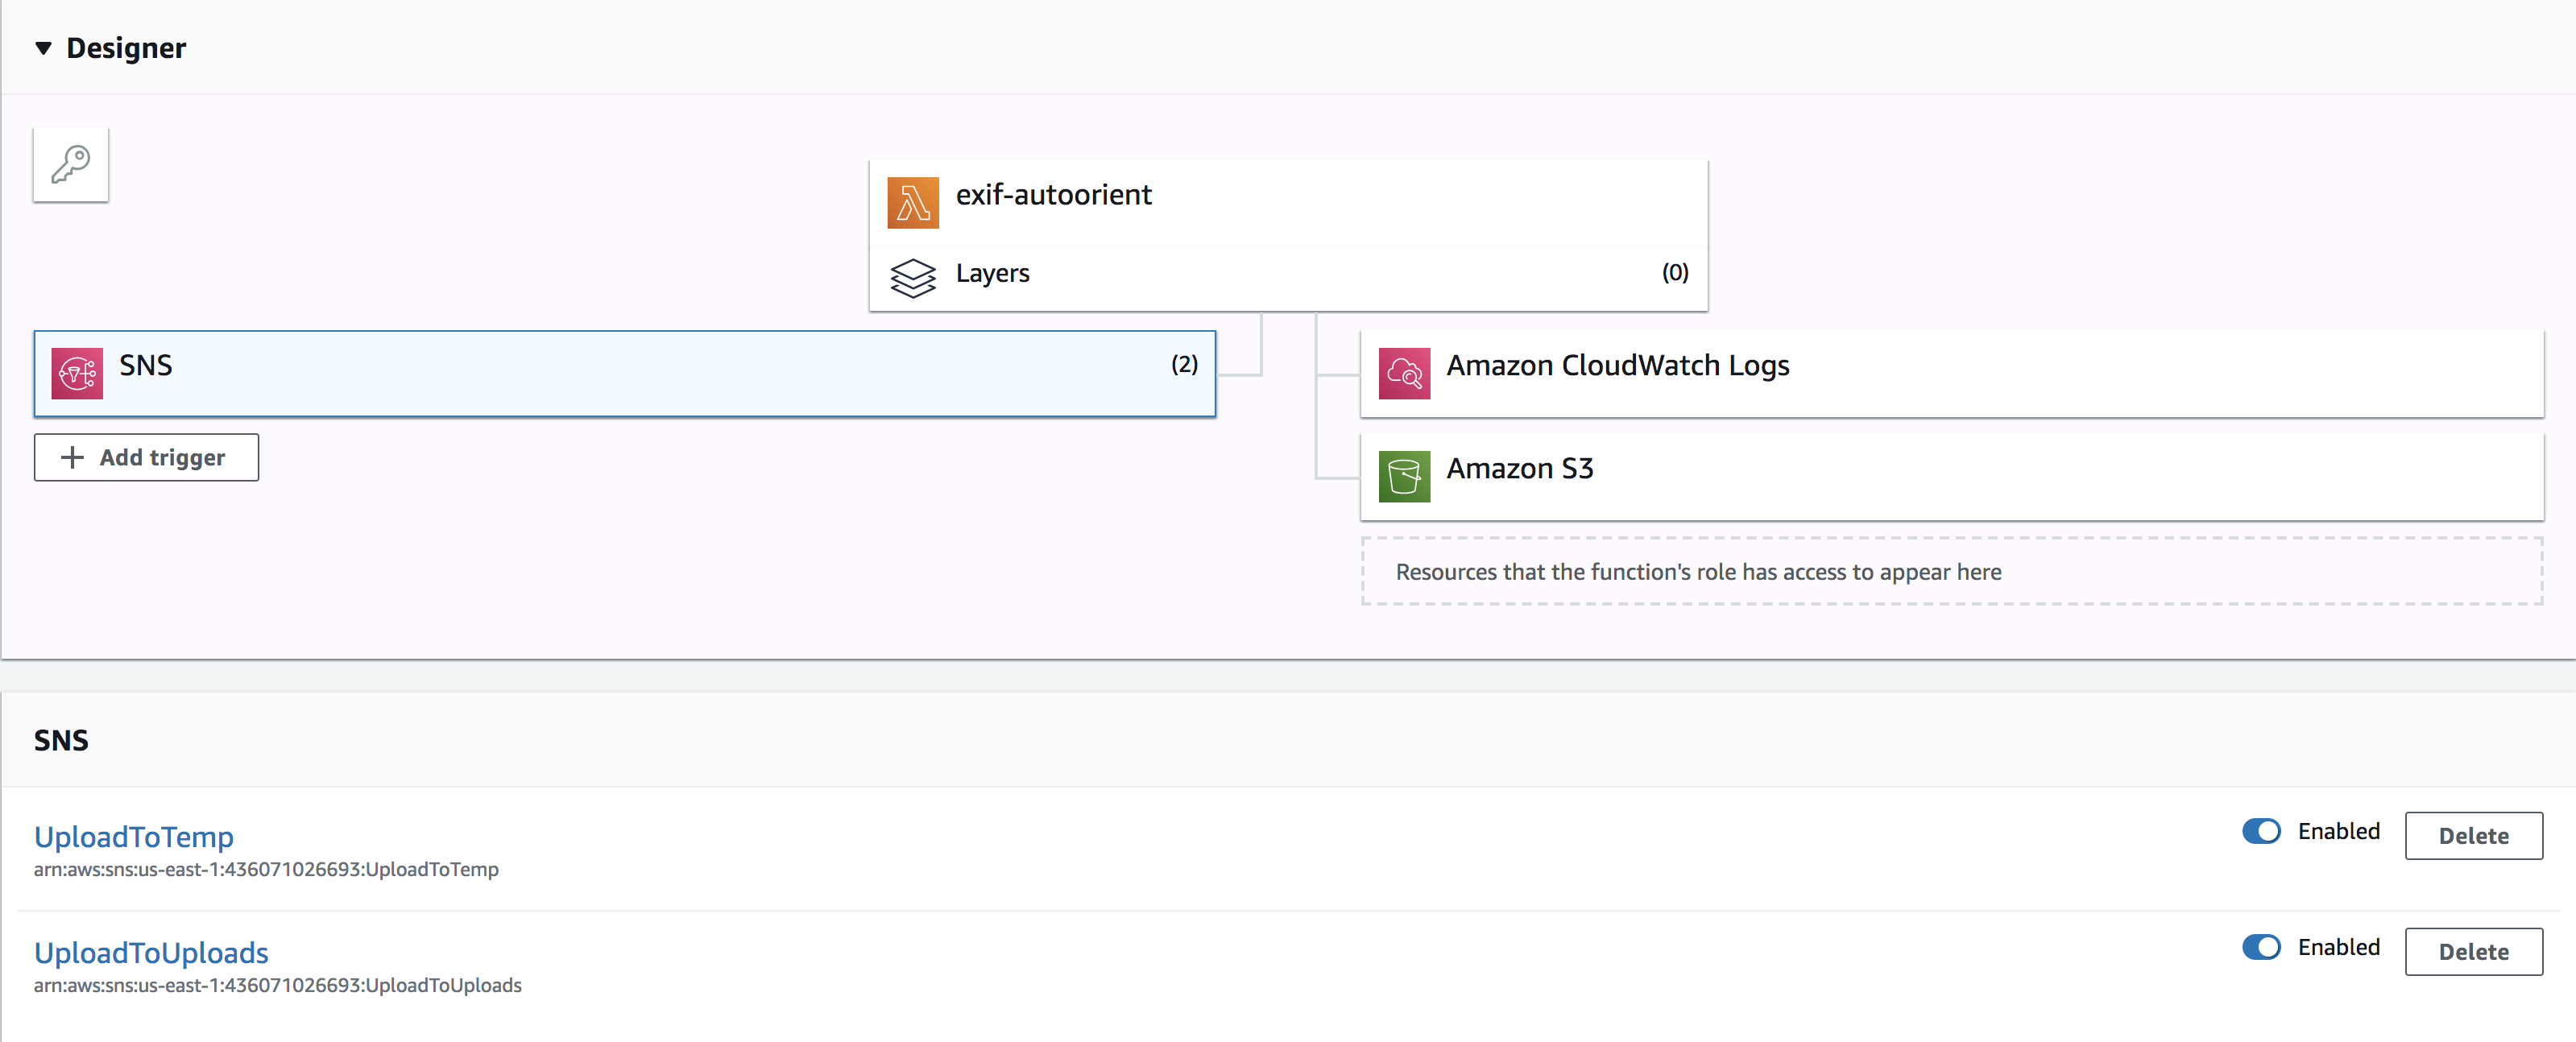 Image of the AWS console lambda page showing both lambdas connected to SNS triggers